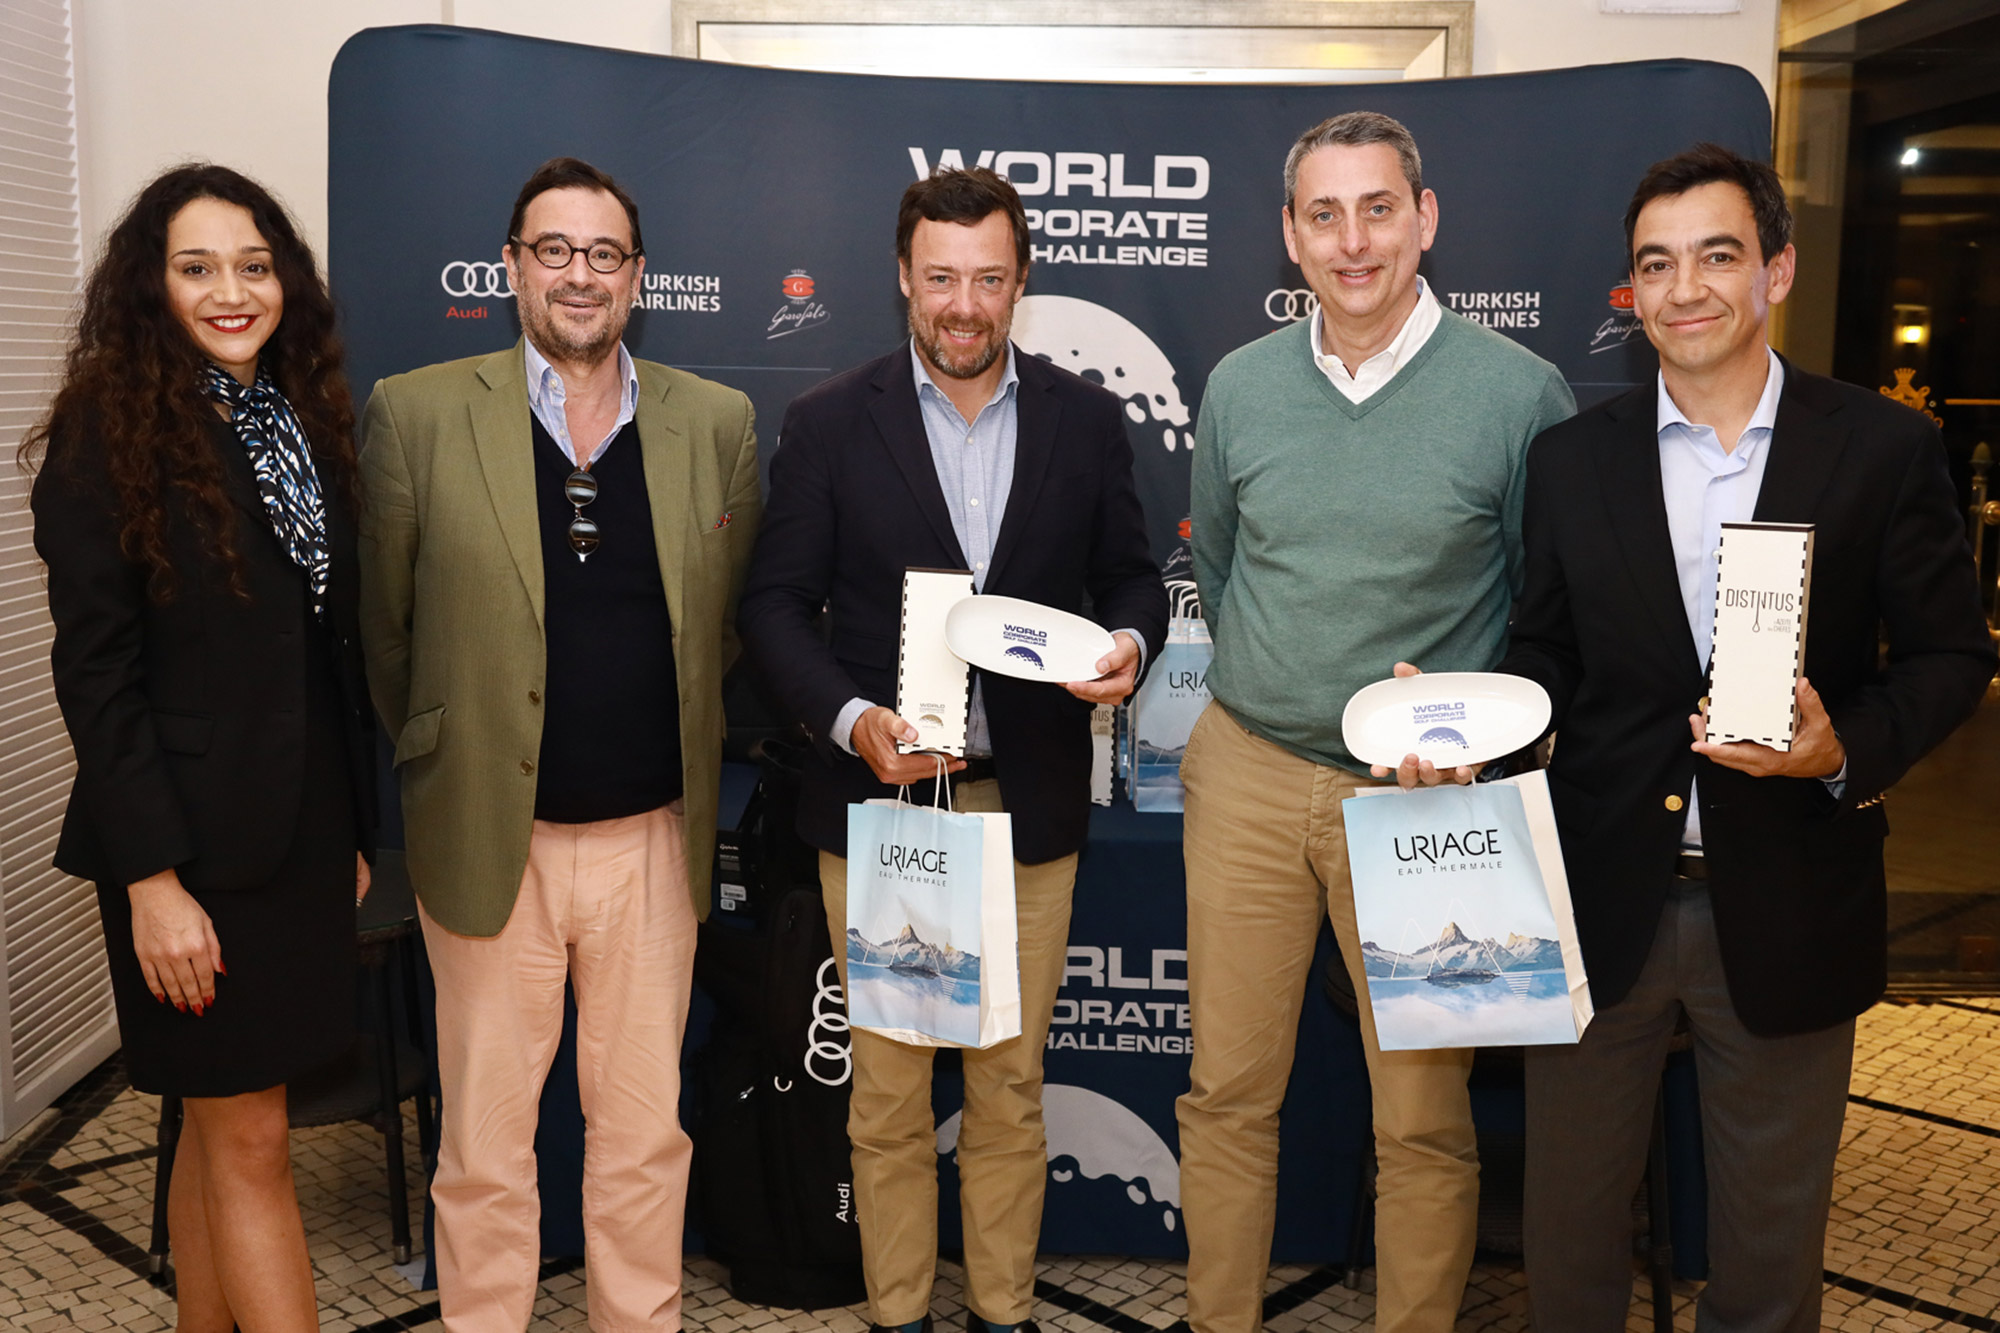 World Corporate Golf Challenge Portugal 2020 by Audi